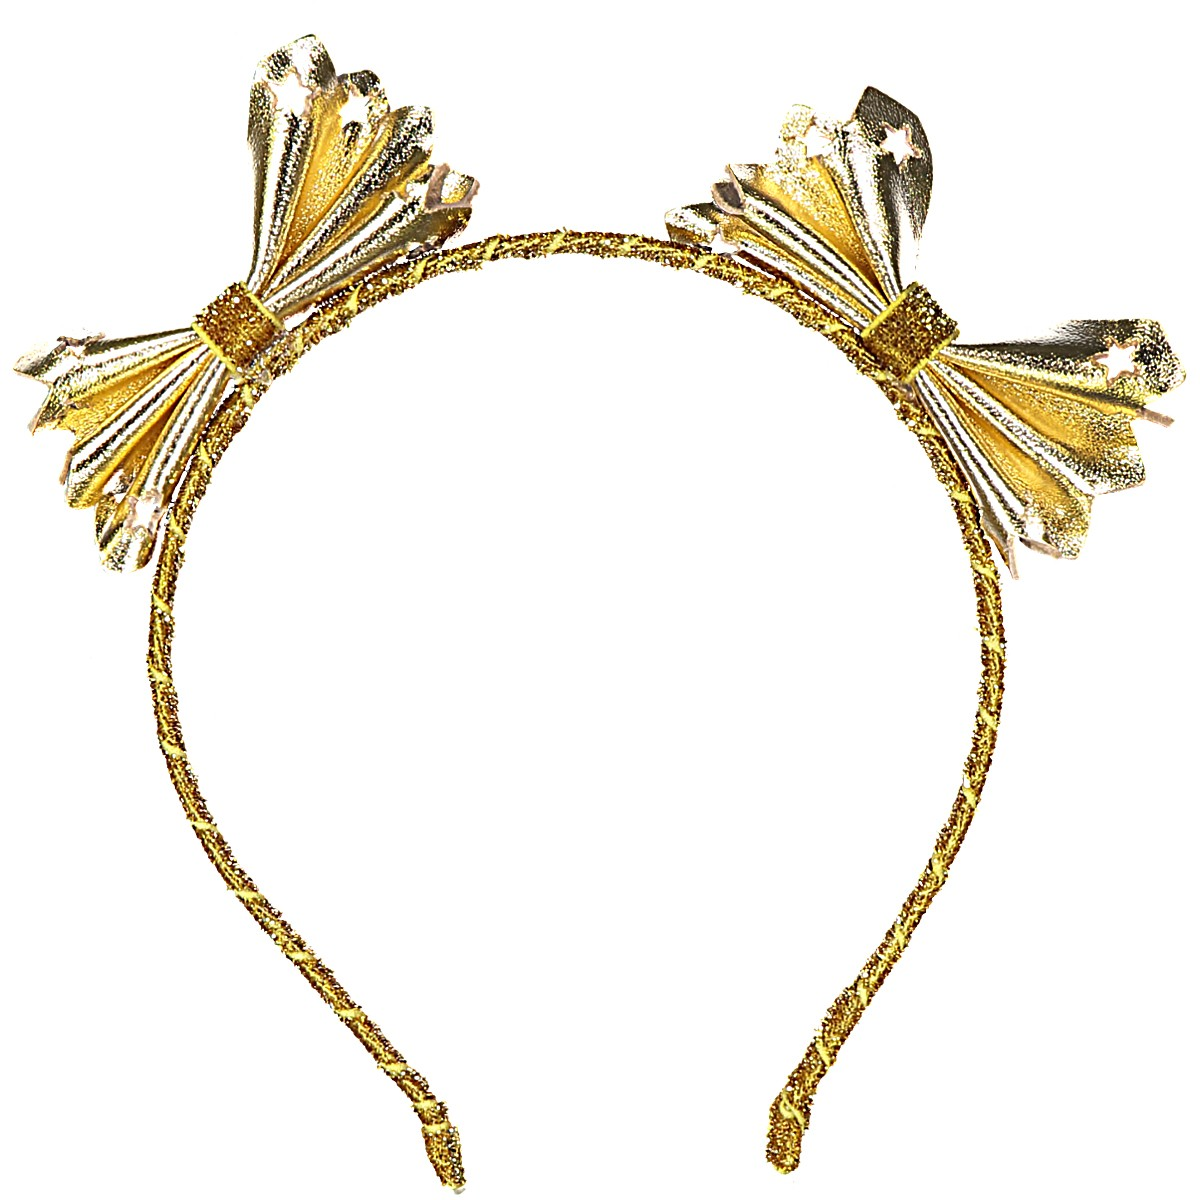 TINY INTERSTELLAR DOUBLE BOW LEATHER HEADBAND GOLD